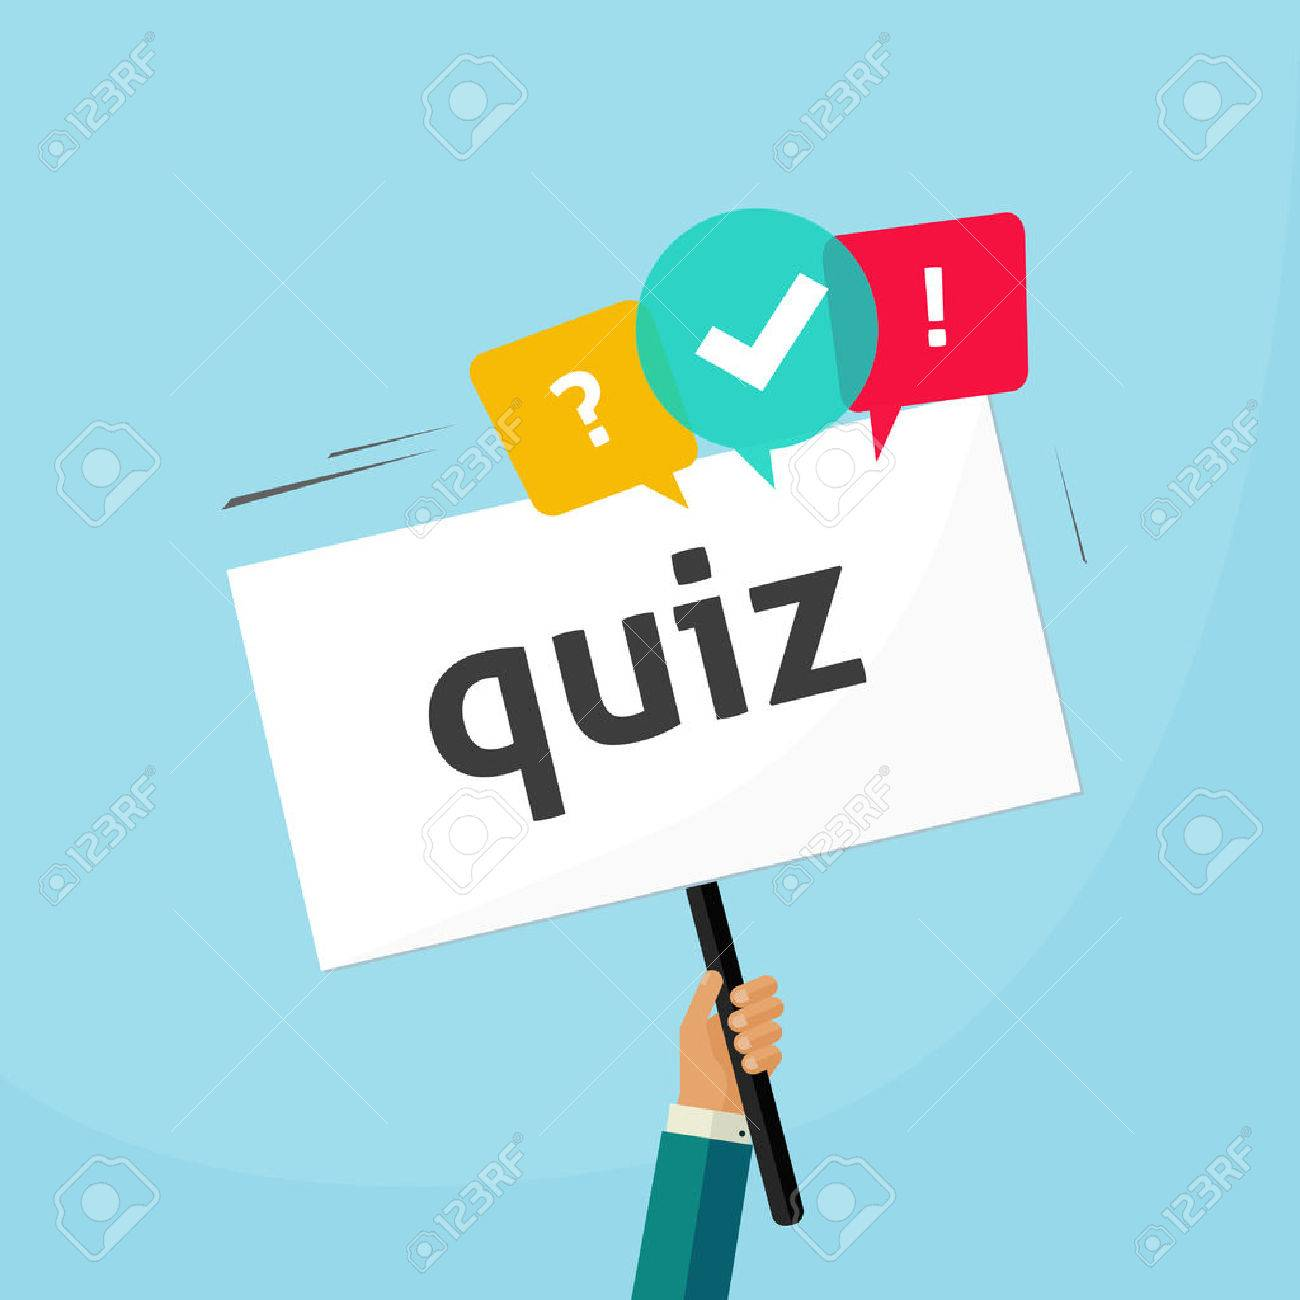 Hand holding placard with quiz text and speech bubble symbols, concept of questionnaire show sing, question competition banner, exam, interview design vector illustration isolated on blue background - 55786055